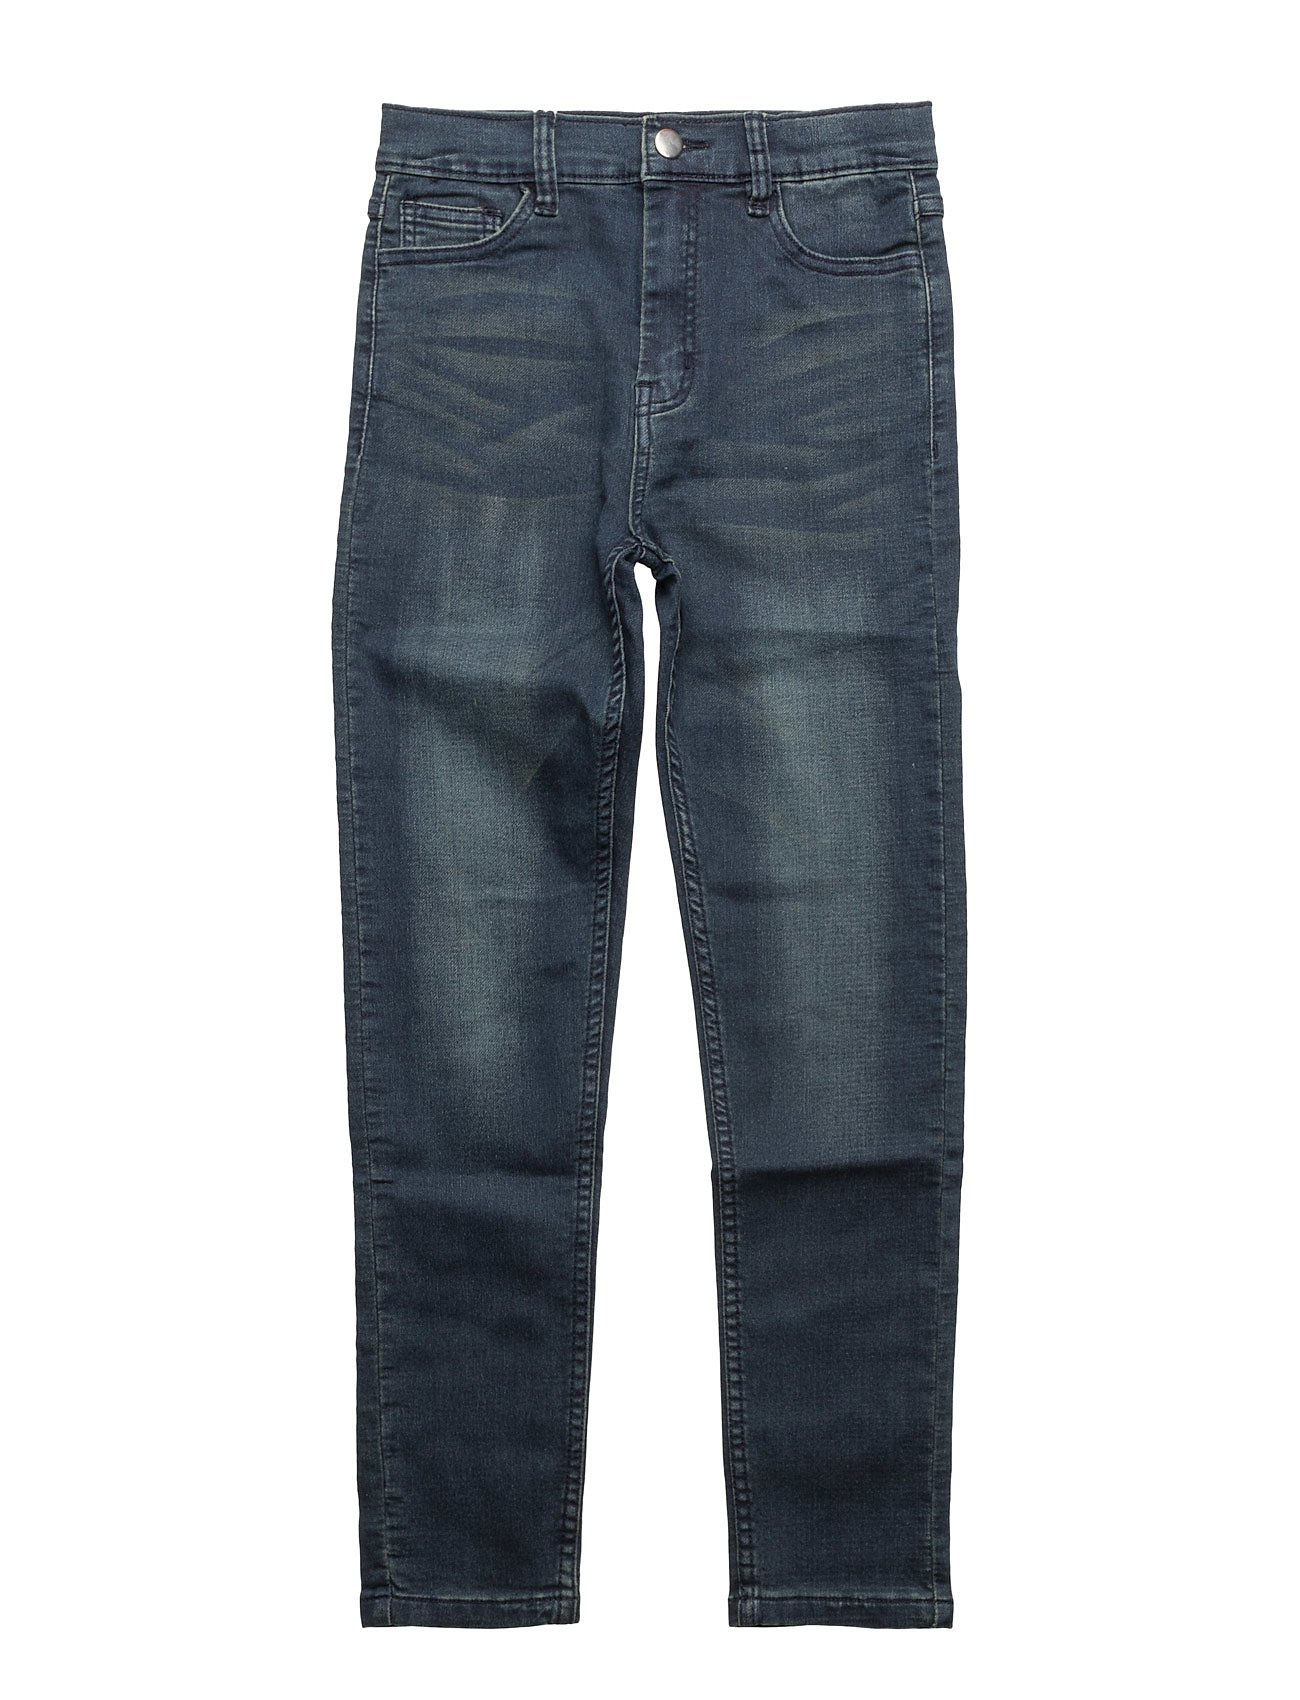 Tapered Denim Dark 2 NOVA STAR  til Børn i Blå